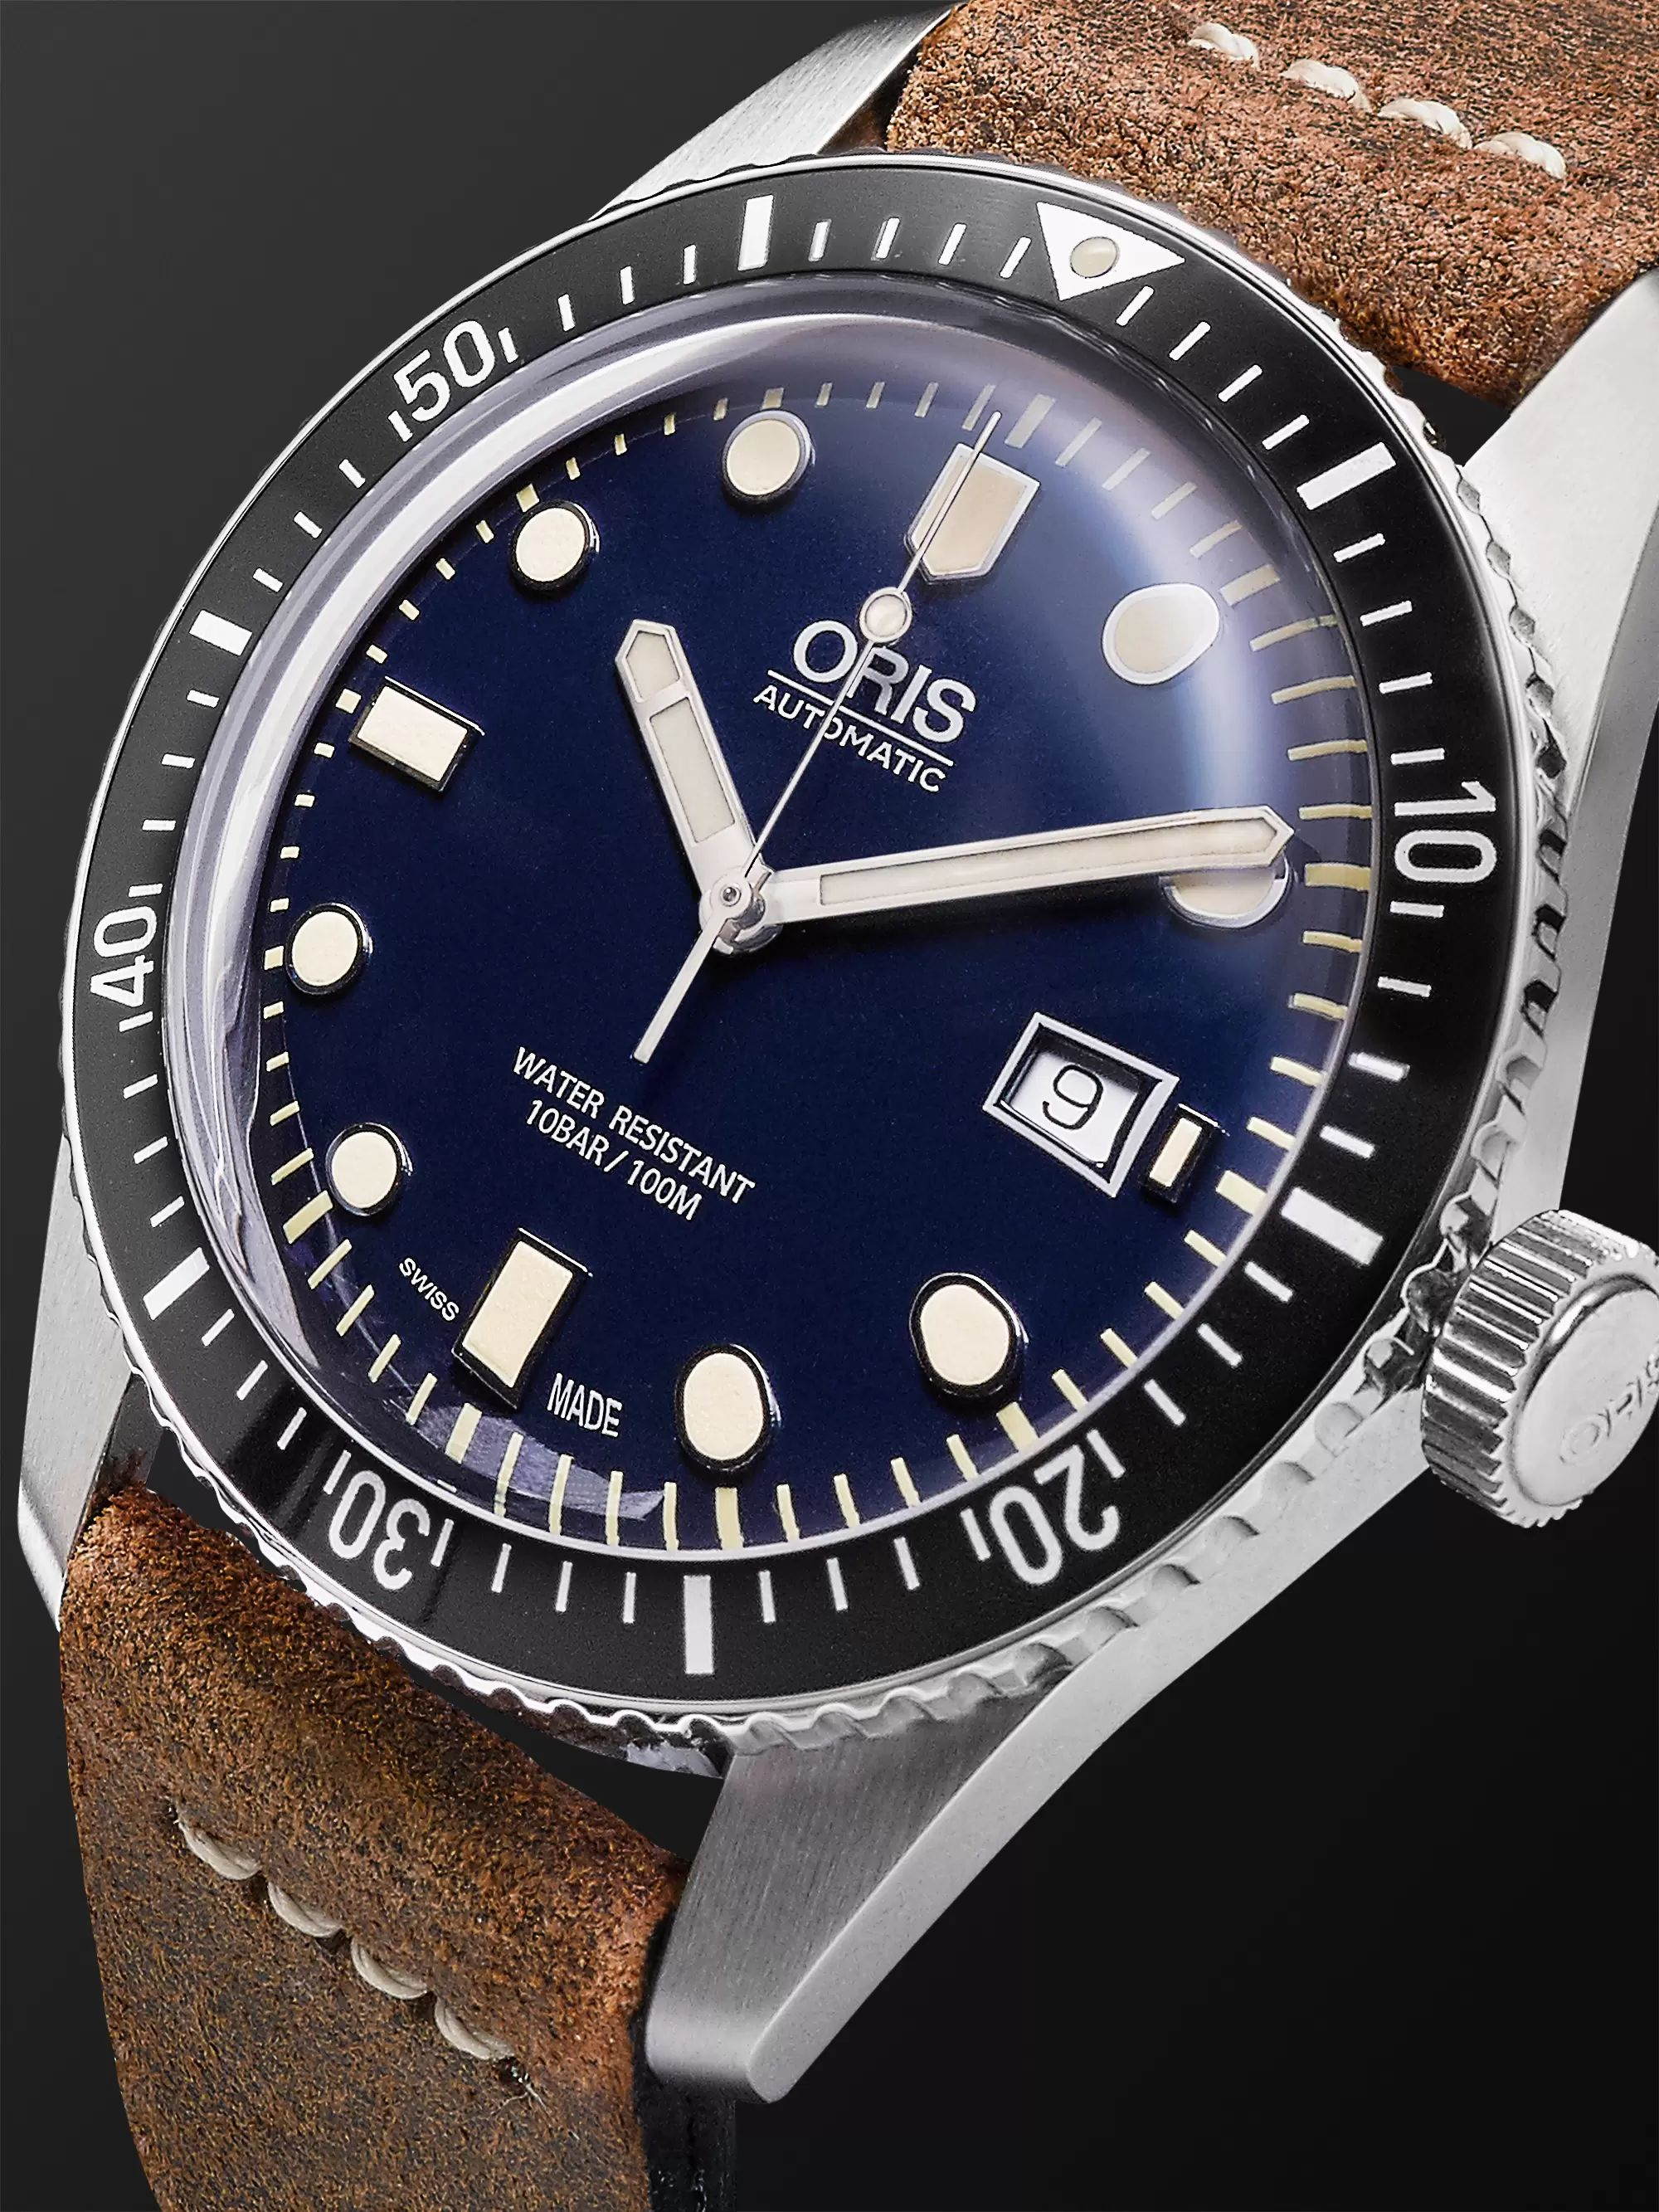 Oris Divers Heritage 65 Automatic 42mm Stainless Steel and Suede Watch, Ref. No. 01 733 7720 4055-07 5 21 02